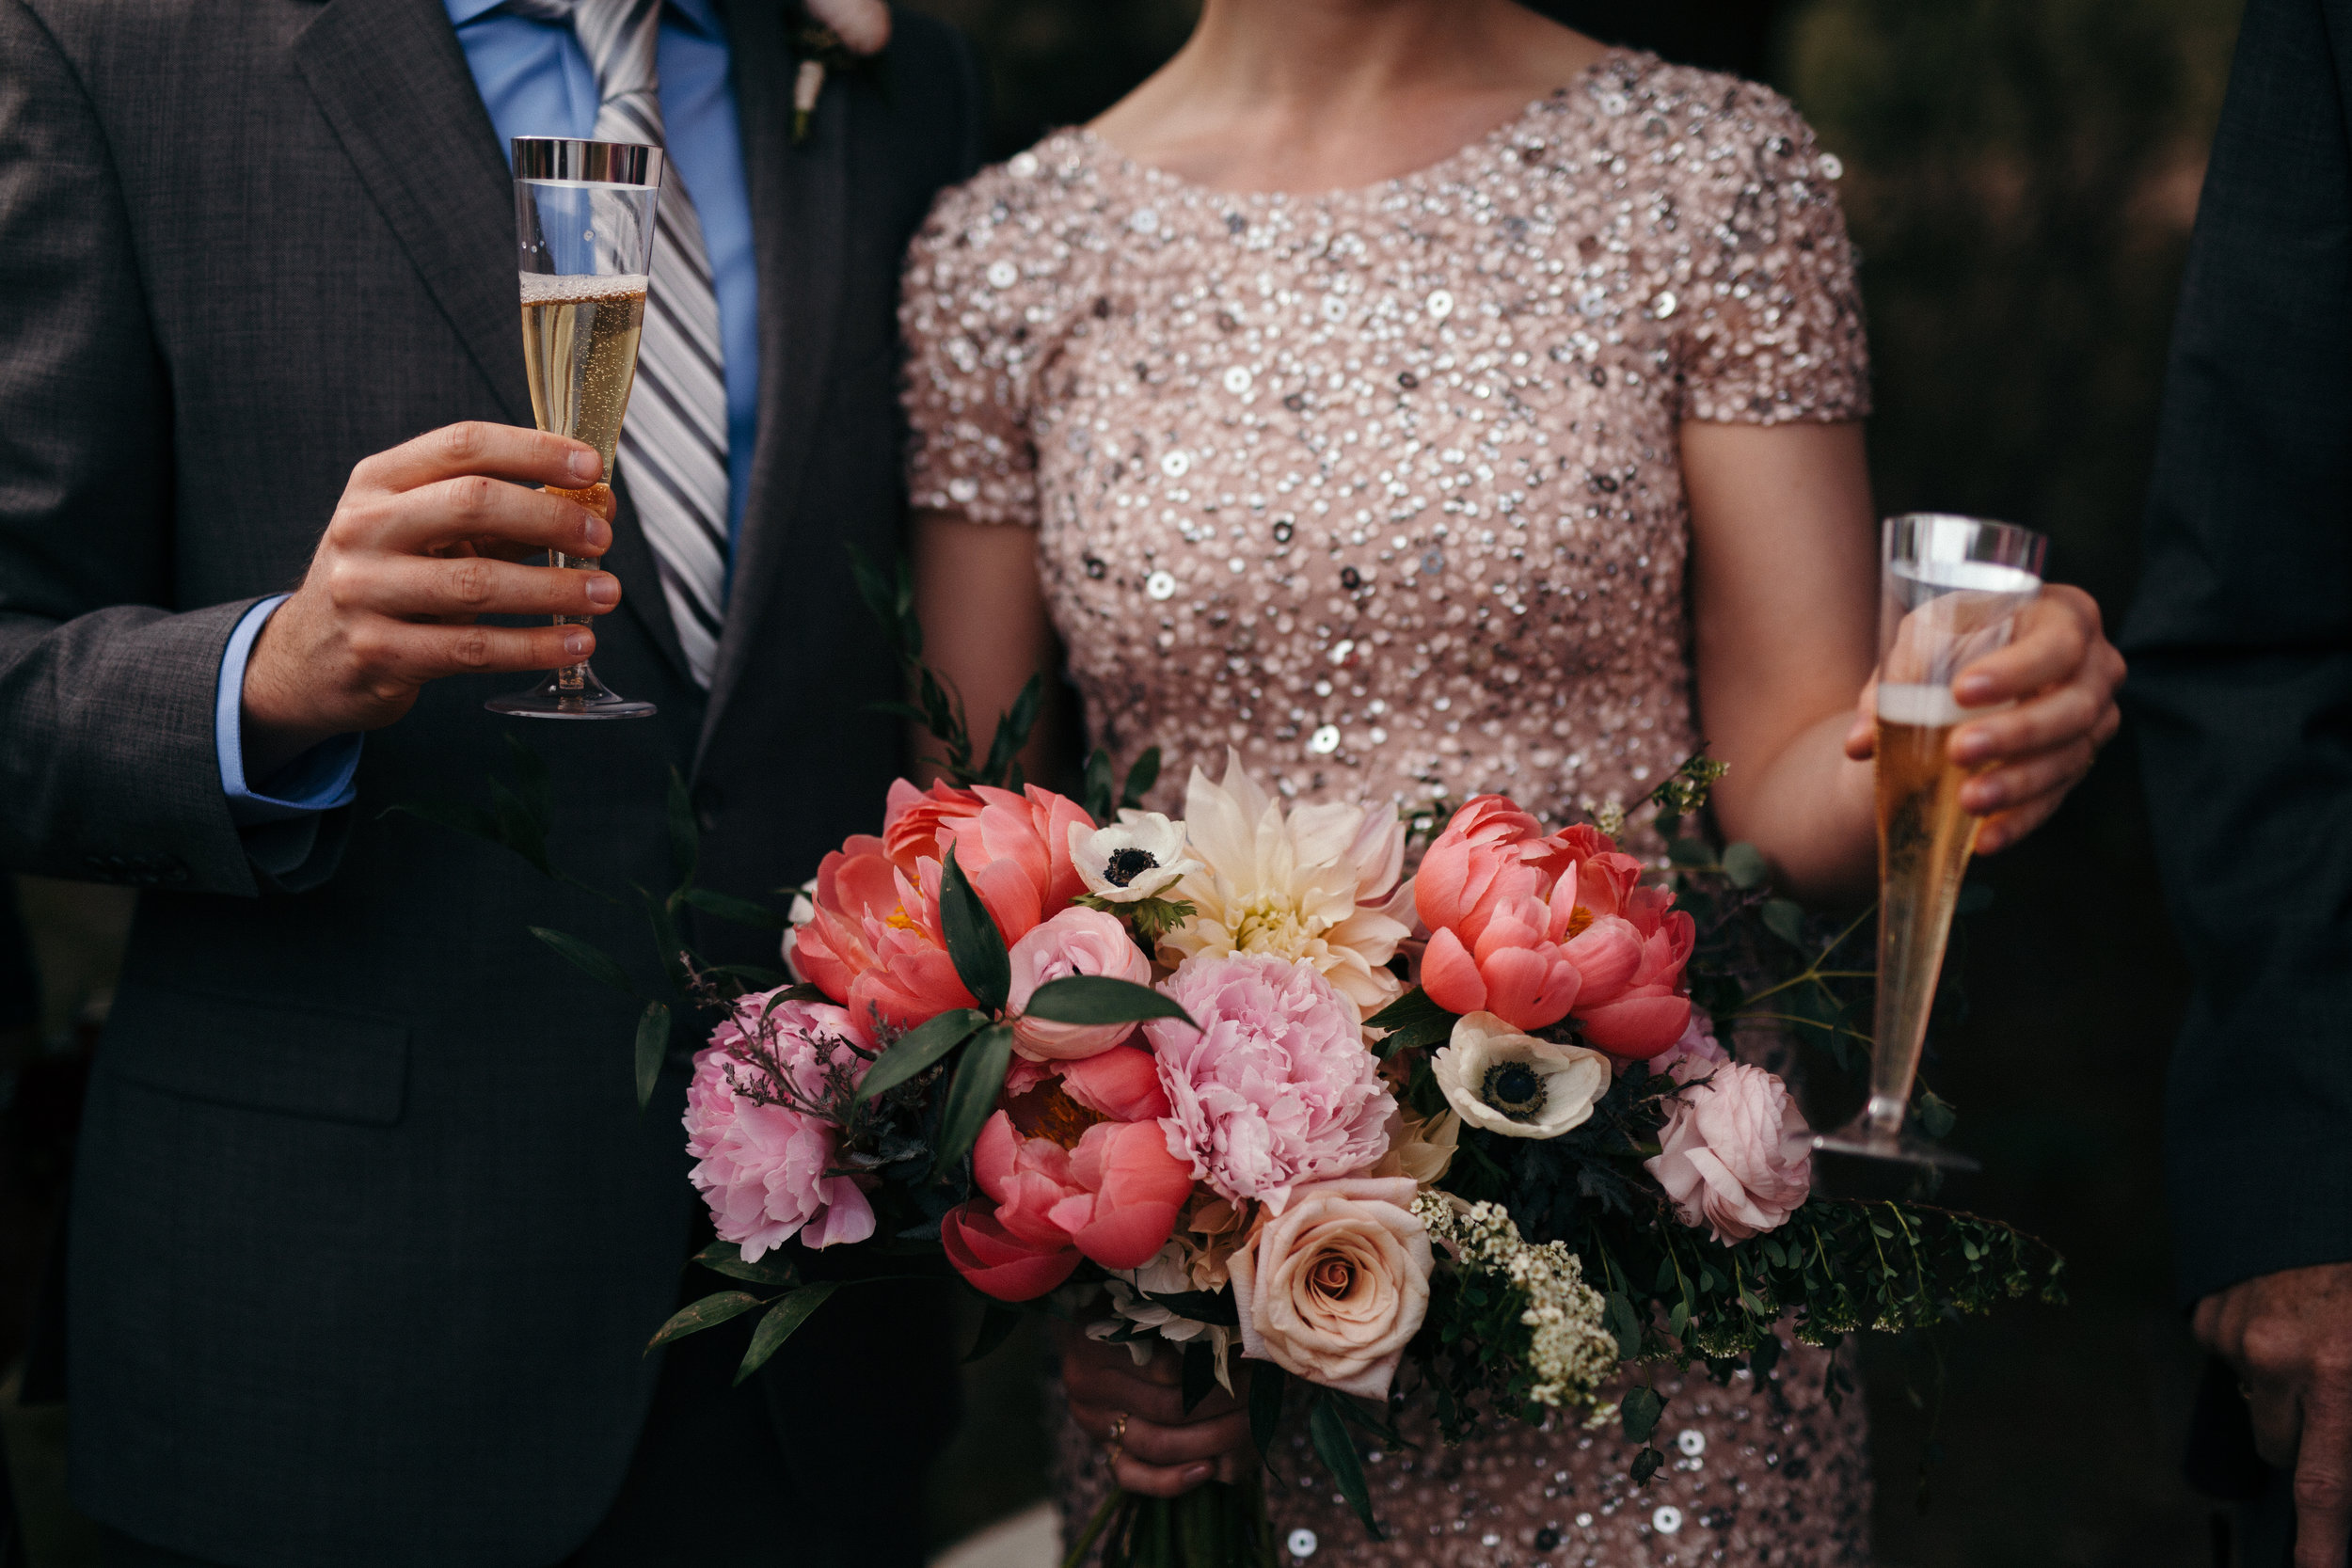 Flowers by Lace and Lilies, elopement flowers, wedding flowers, bridal bouquet, champagne toast, bridal gown, pink flowers